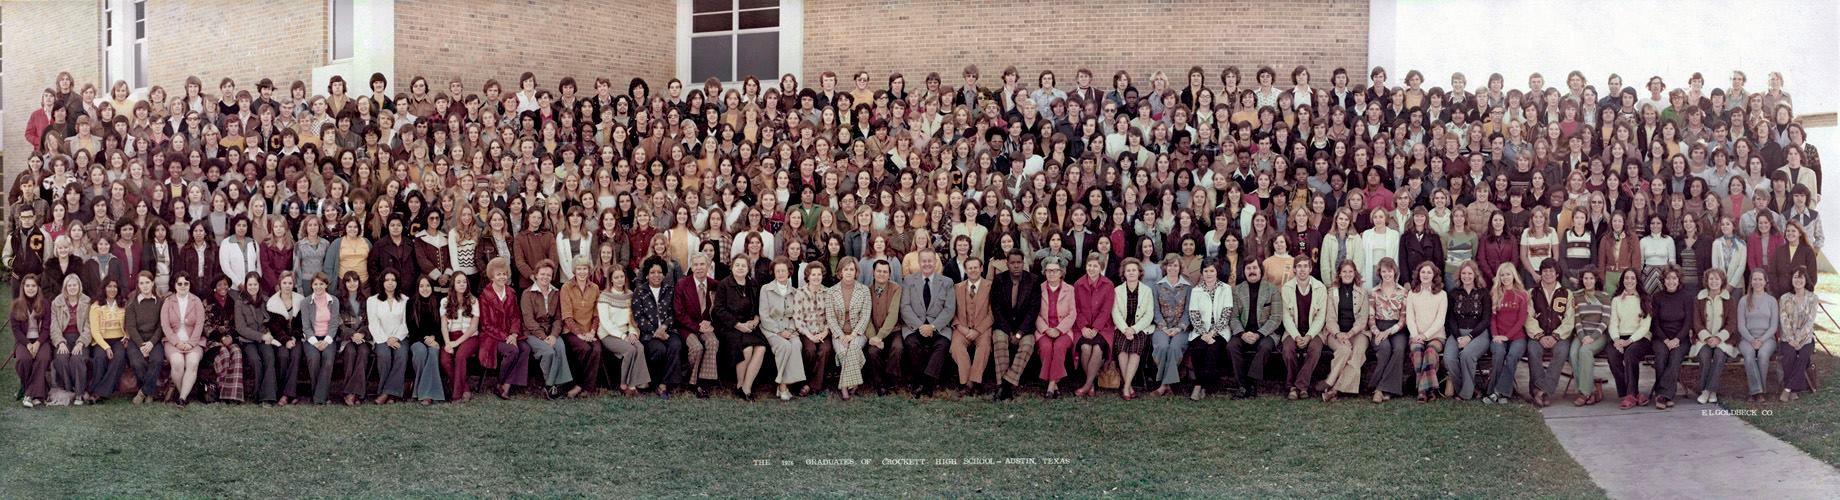 David Crockett High School Class of 76